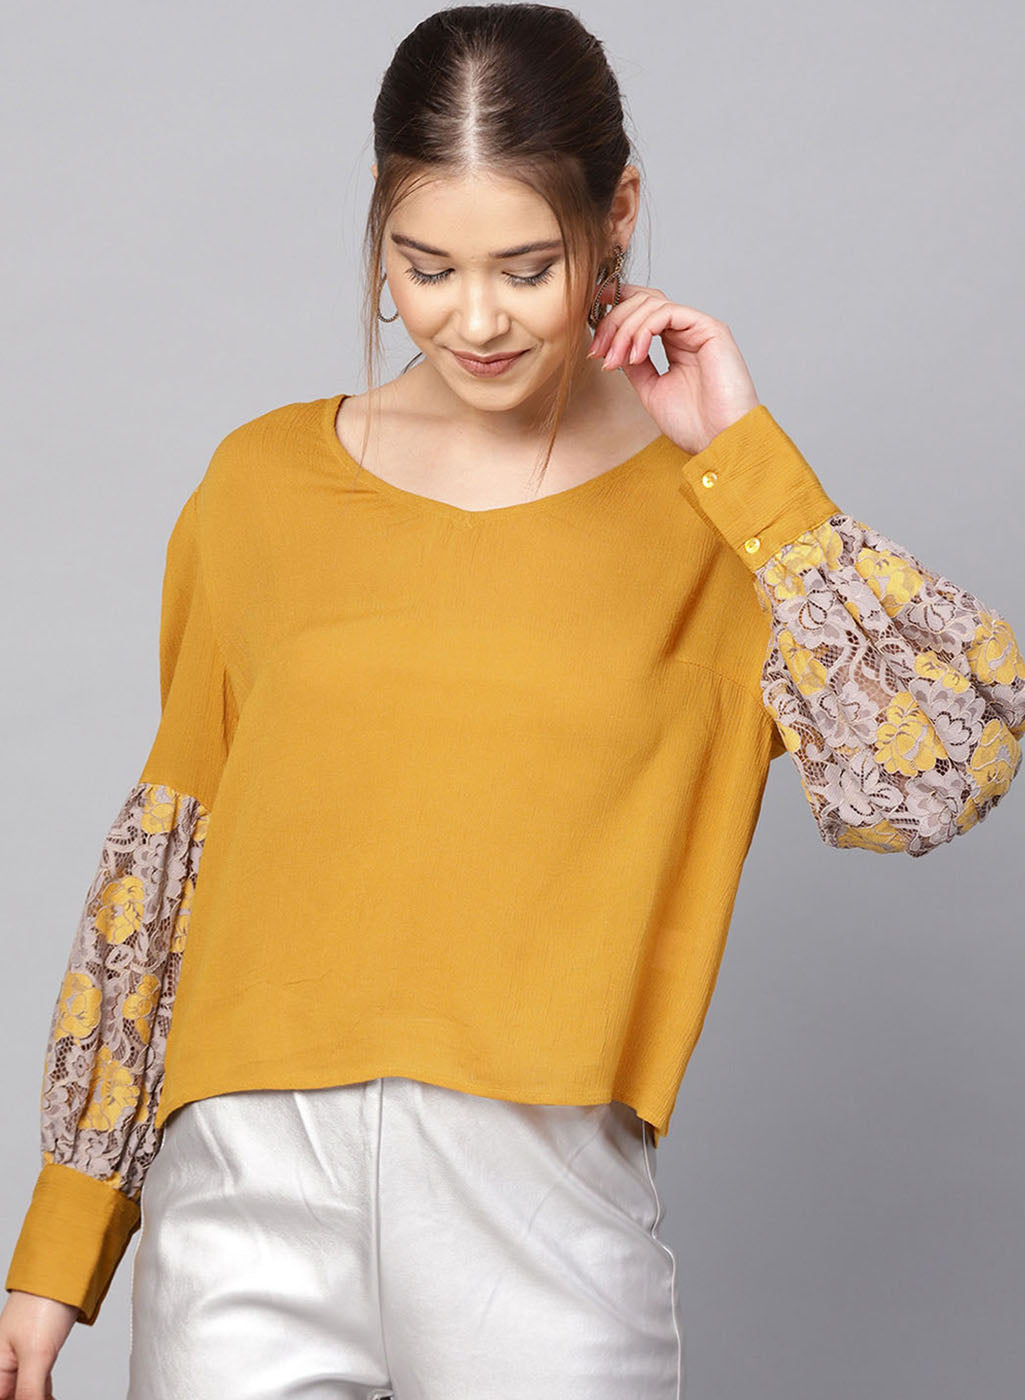 V Neck Top With Lace Insert At The Sleeves